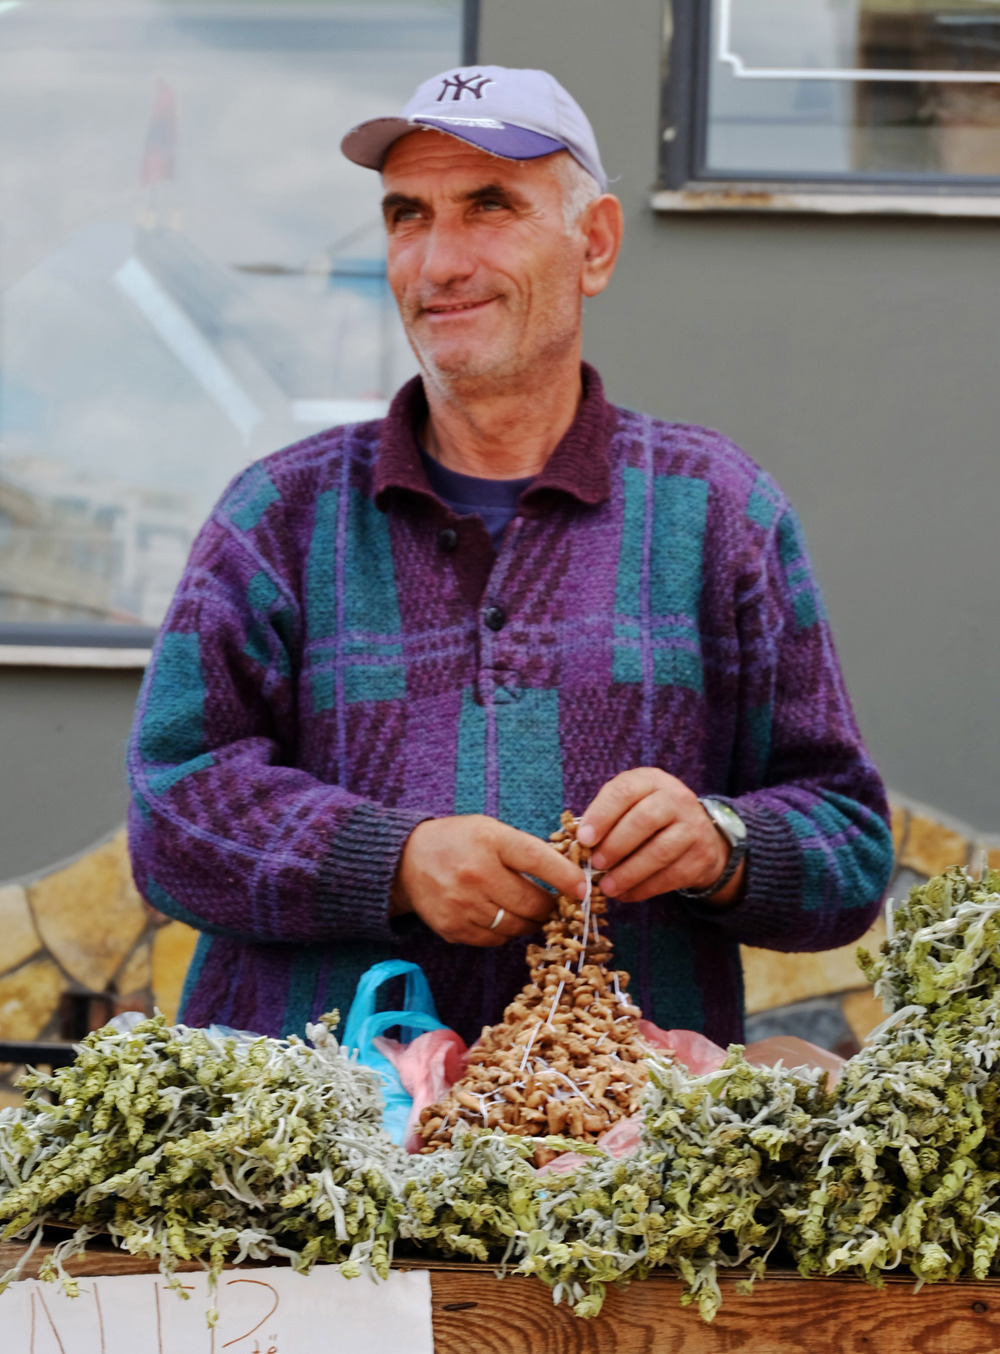 This gentleman is handling Salep which comes from the Orchid root. It's consumed in desserts and beverages mostly in Turkey and around the Balkans.